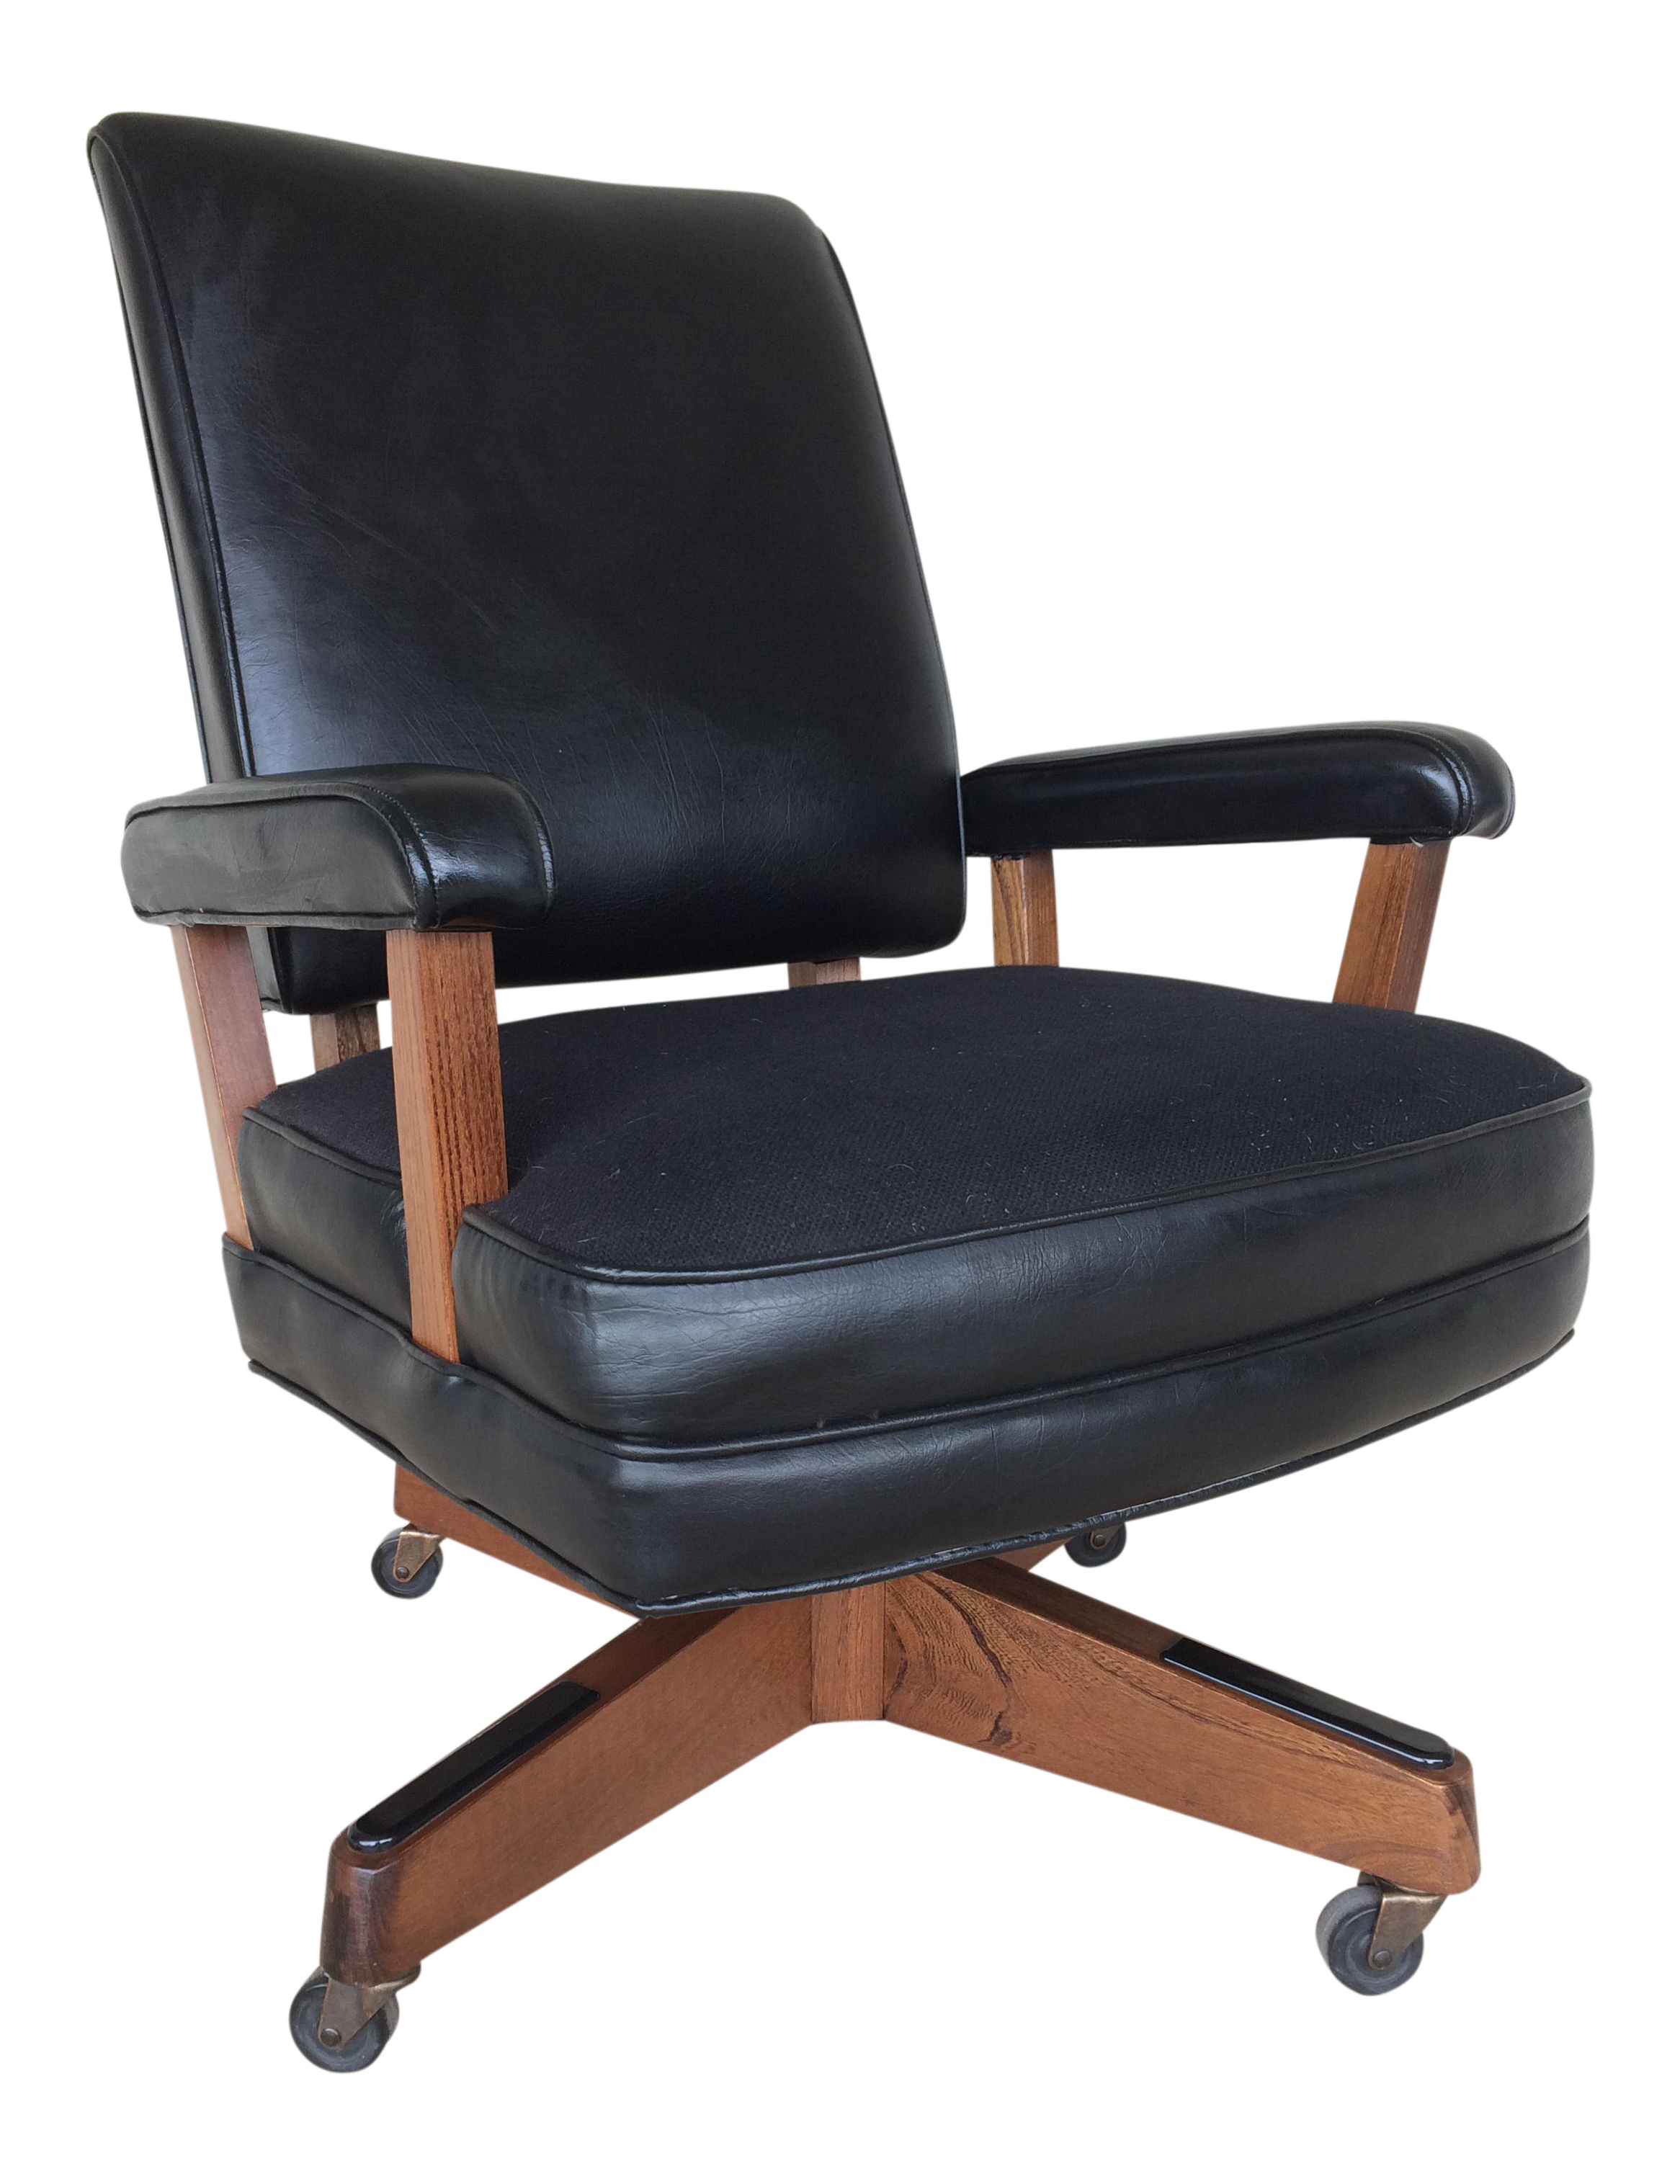 Vintage Hon Furniture Mid-Century Modern Faux Leather Desk Chair  sc 1 st  Chairish & Vintage Hon Furniture Mid-Century Modern Faux Leather Desk Chair ...